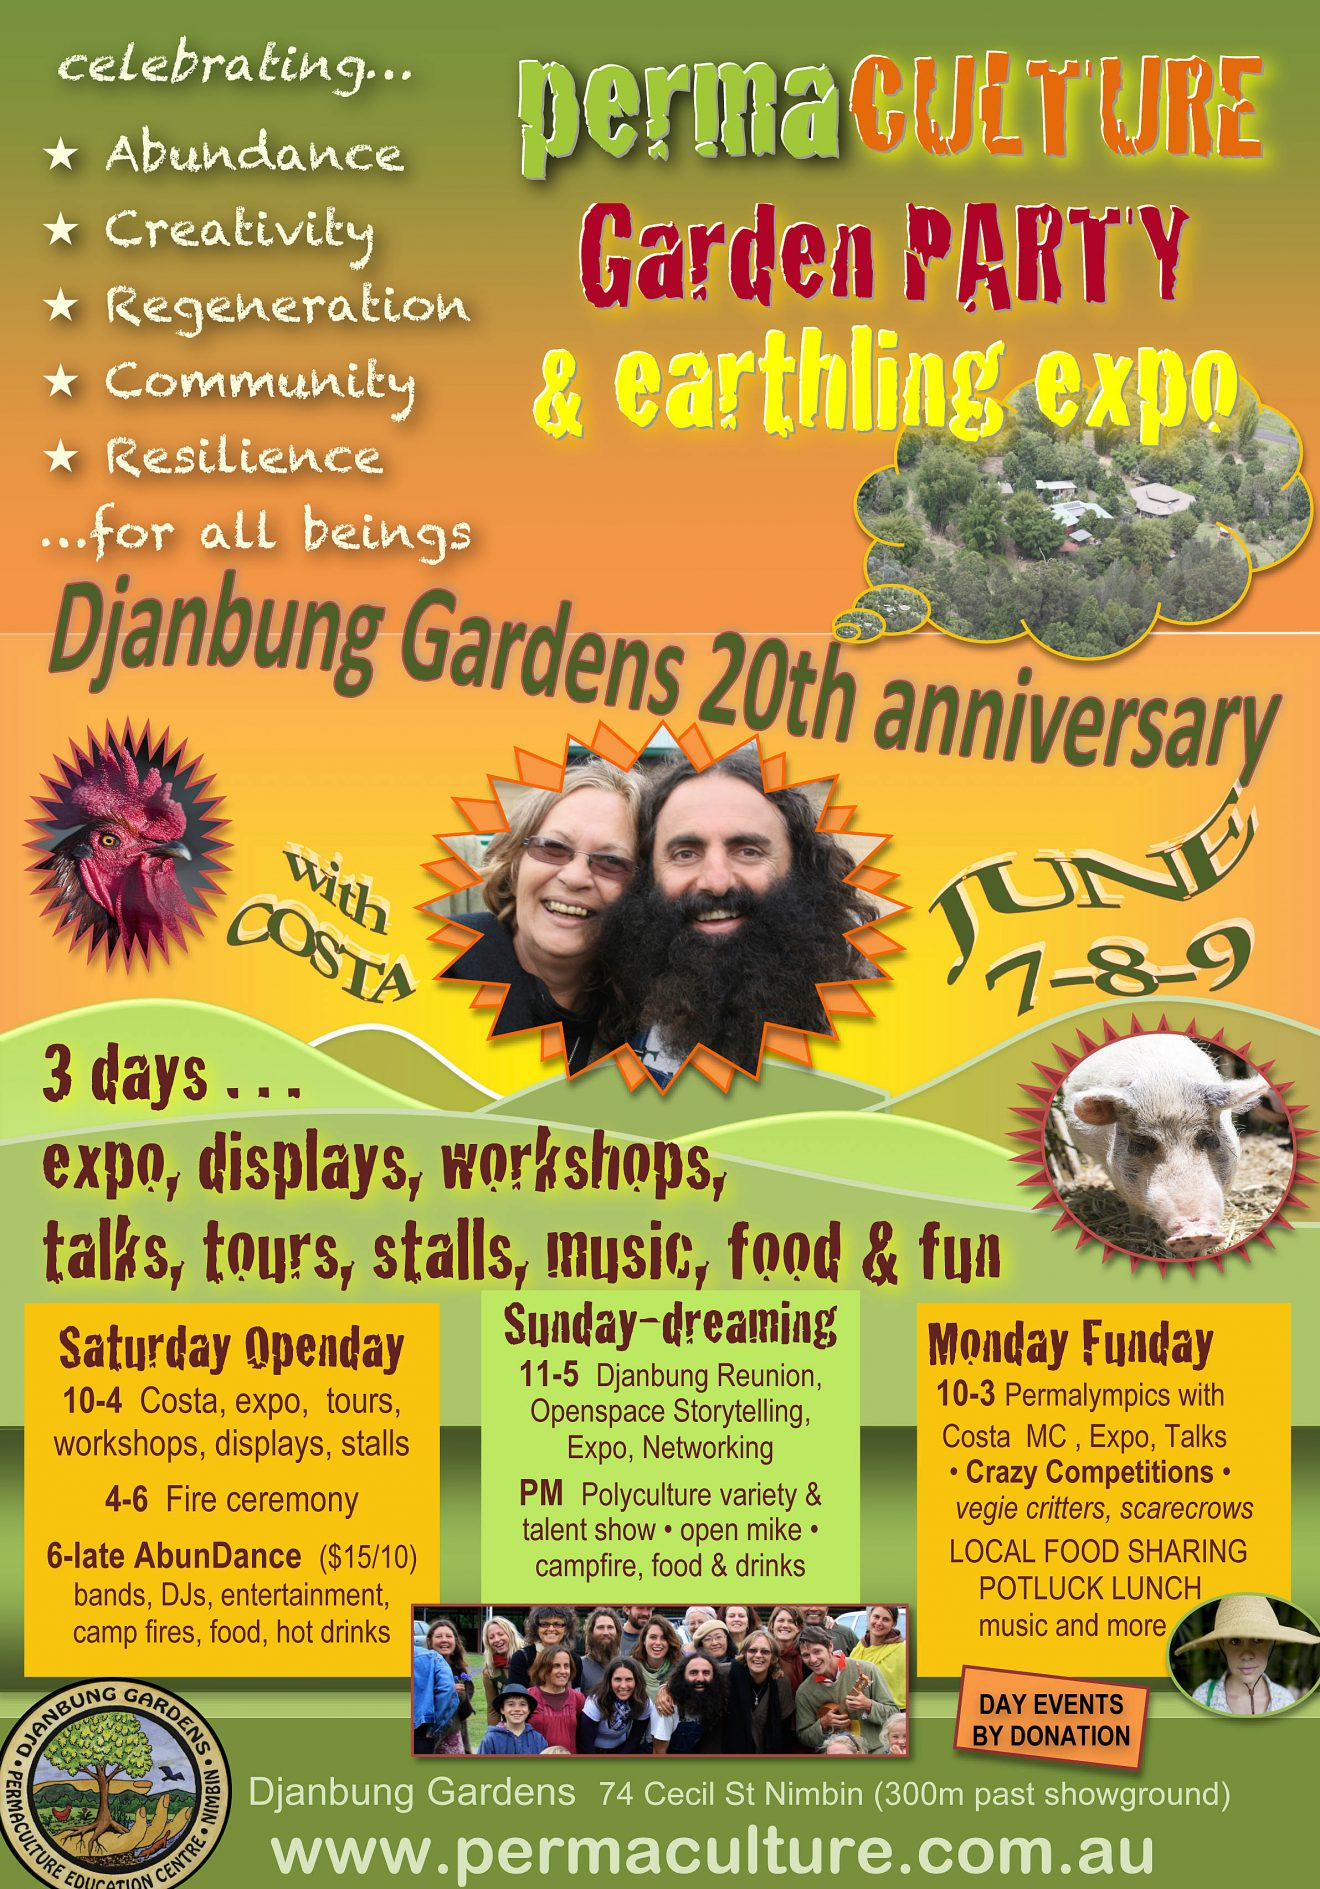 Djanbung 20th Anniversary Celebration - Garden Party, Earthling Expo & 3 days of events.